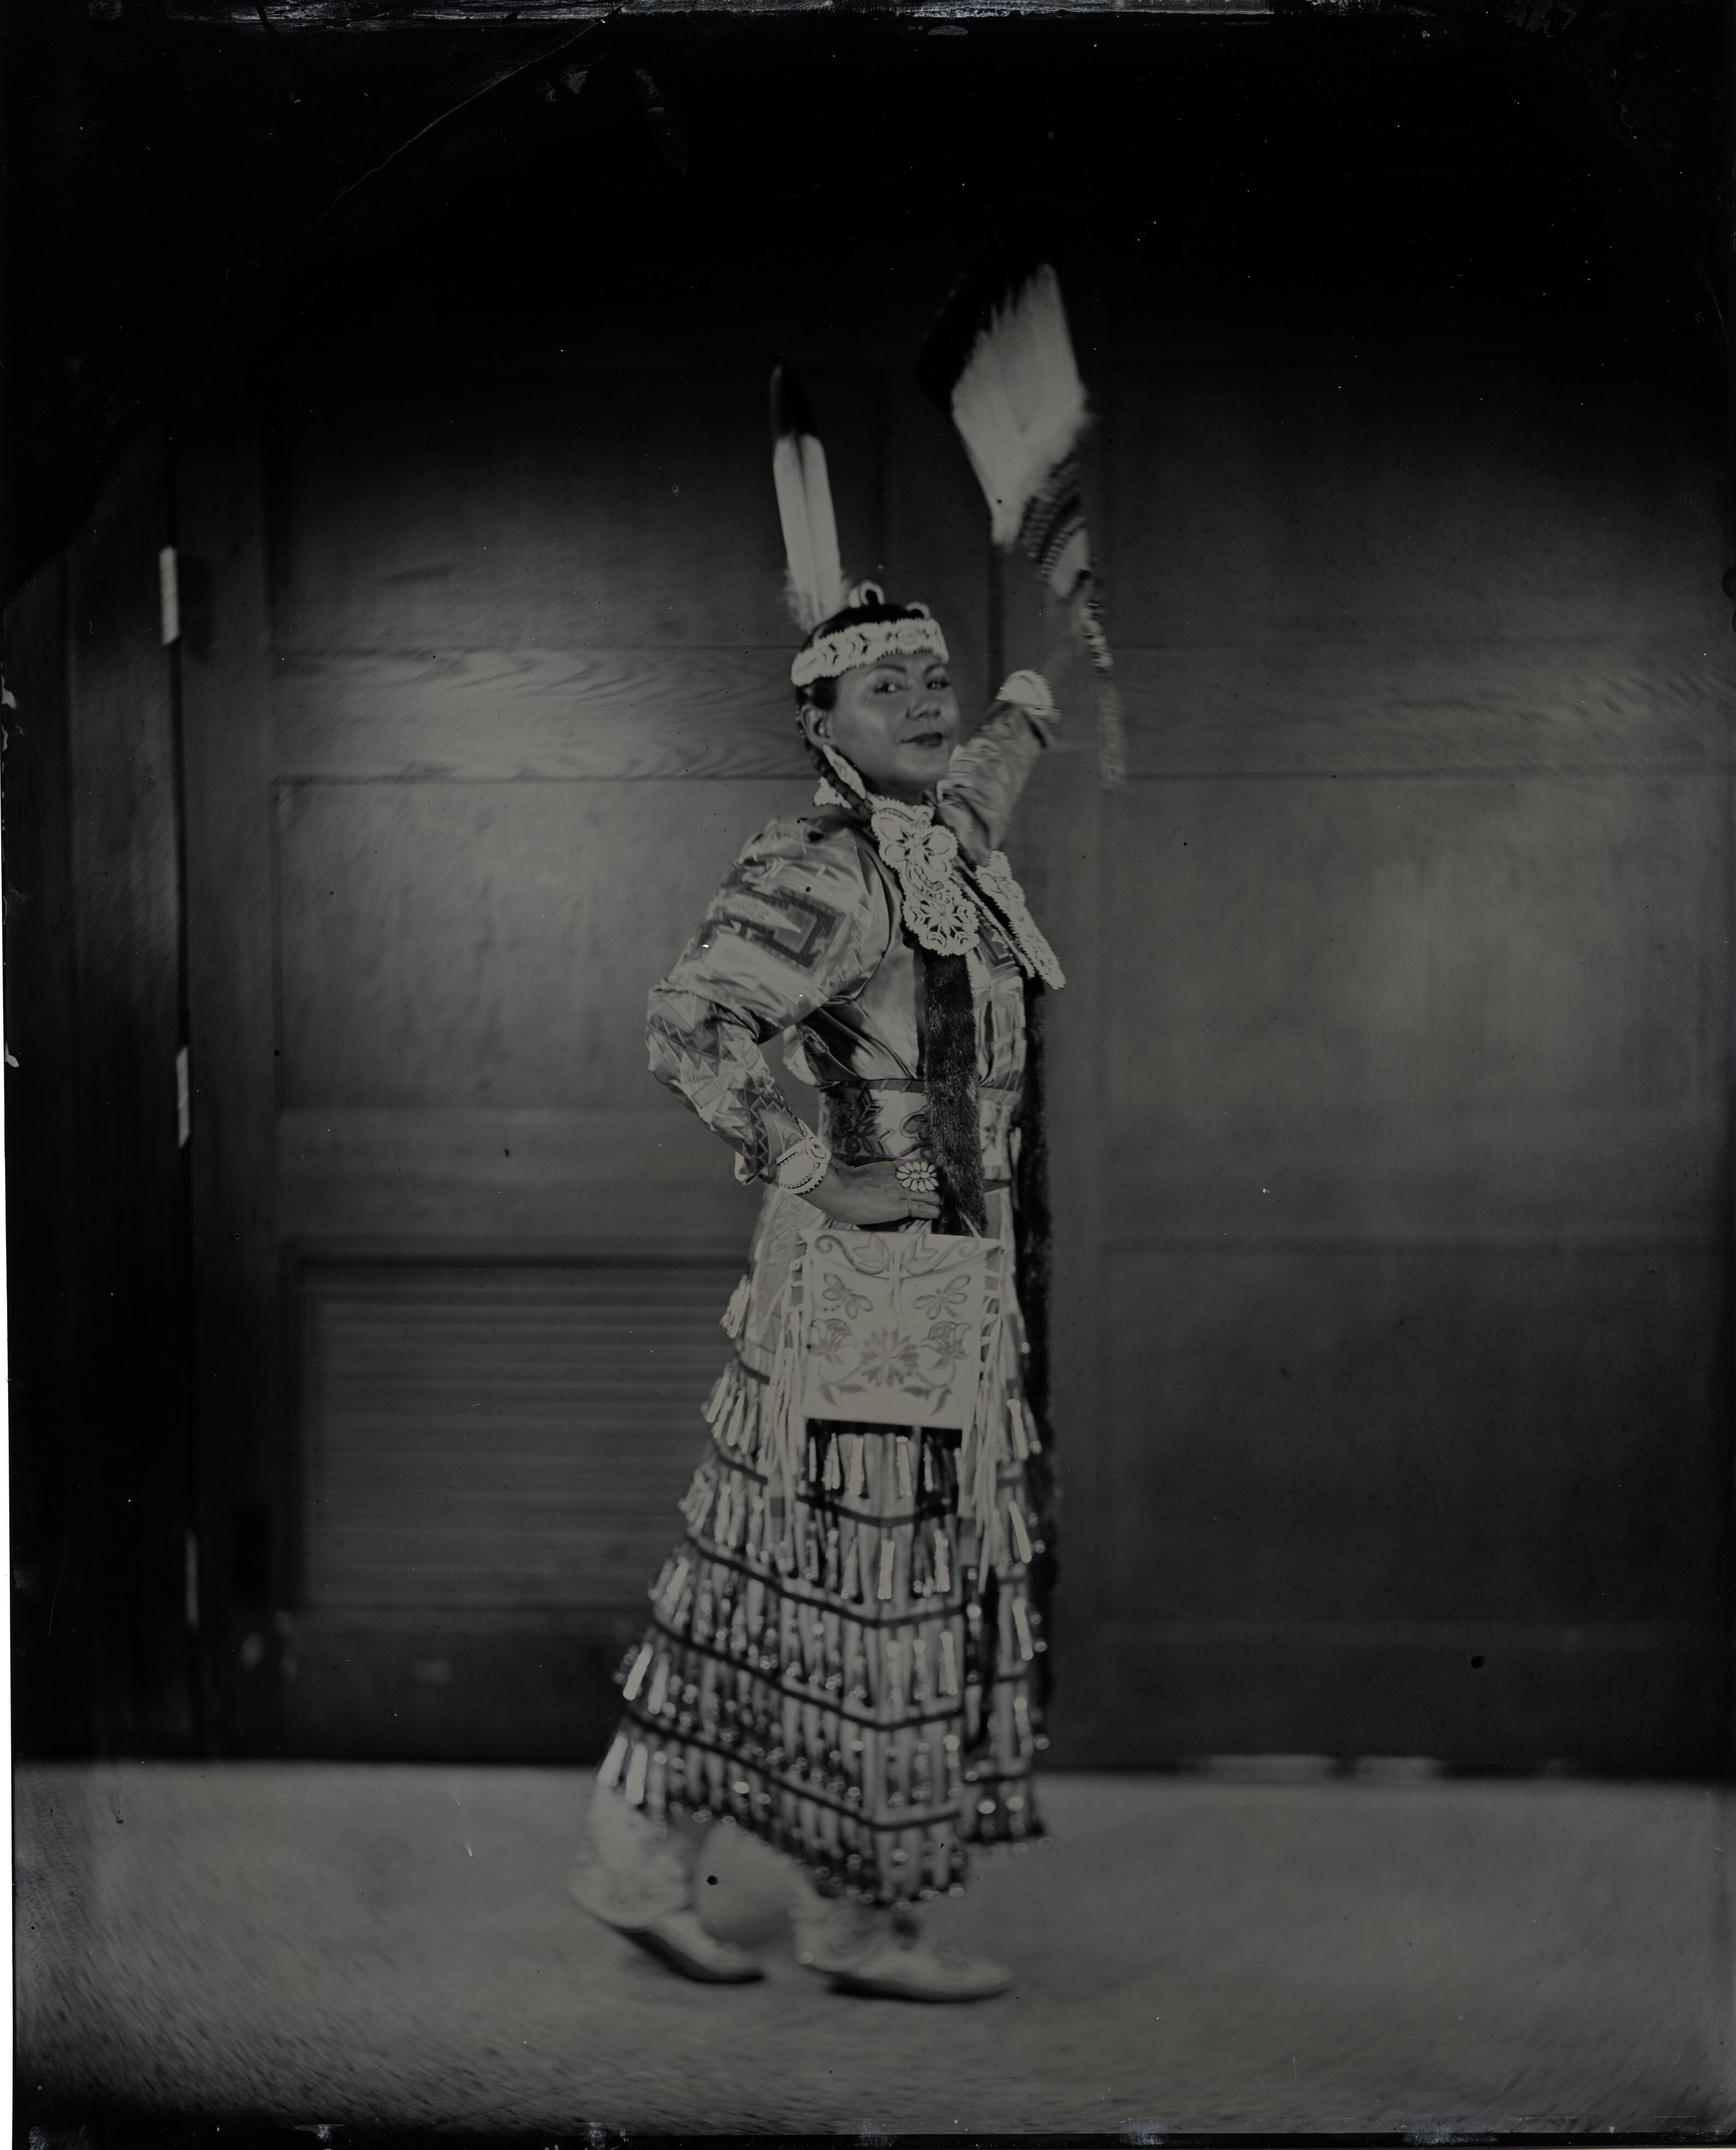 Talking Tintype, Madrienne Salgado, Jingle Dress Dancer/Government and Public Relations Manager for the Muckleshoot Indian Tribe, Citizen of the Muckleshoot Nation, 2017, from the series Critical Indigenous Photographic Exchange, Will Willson.